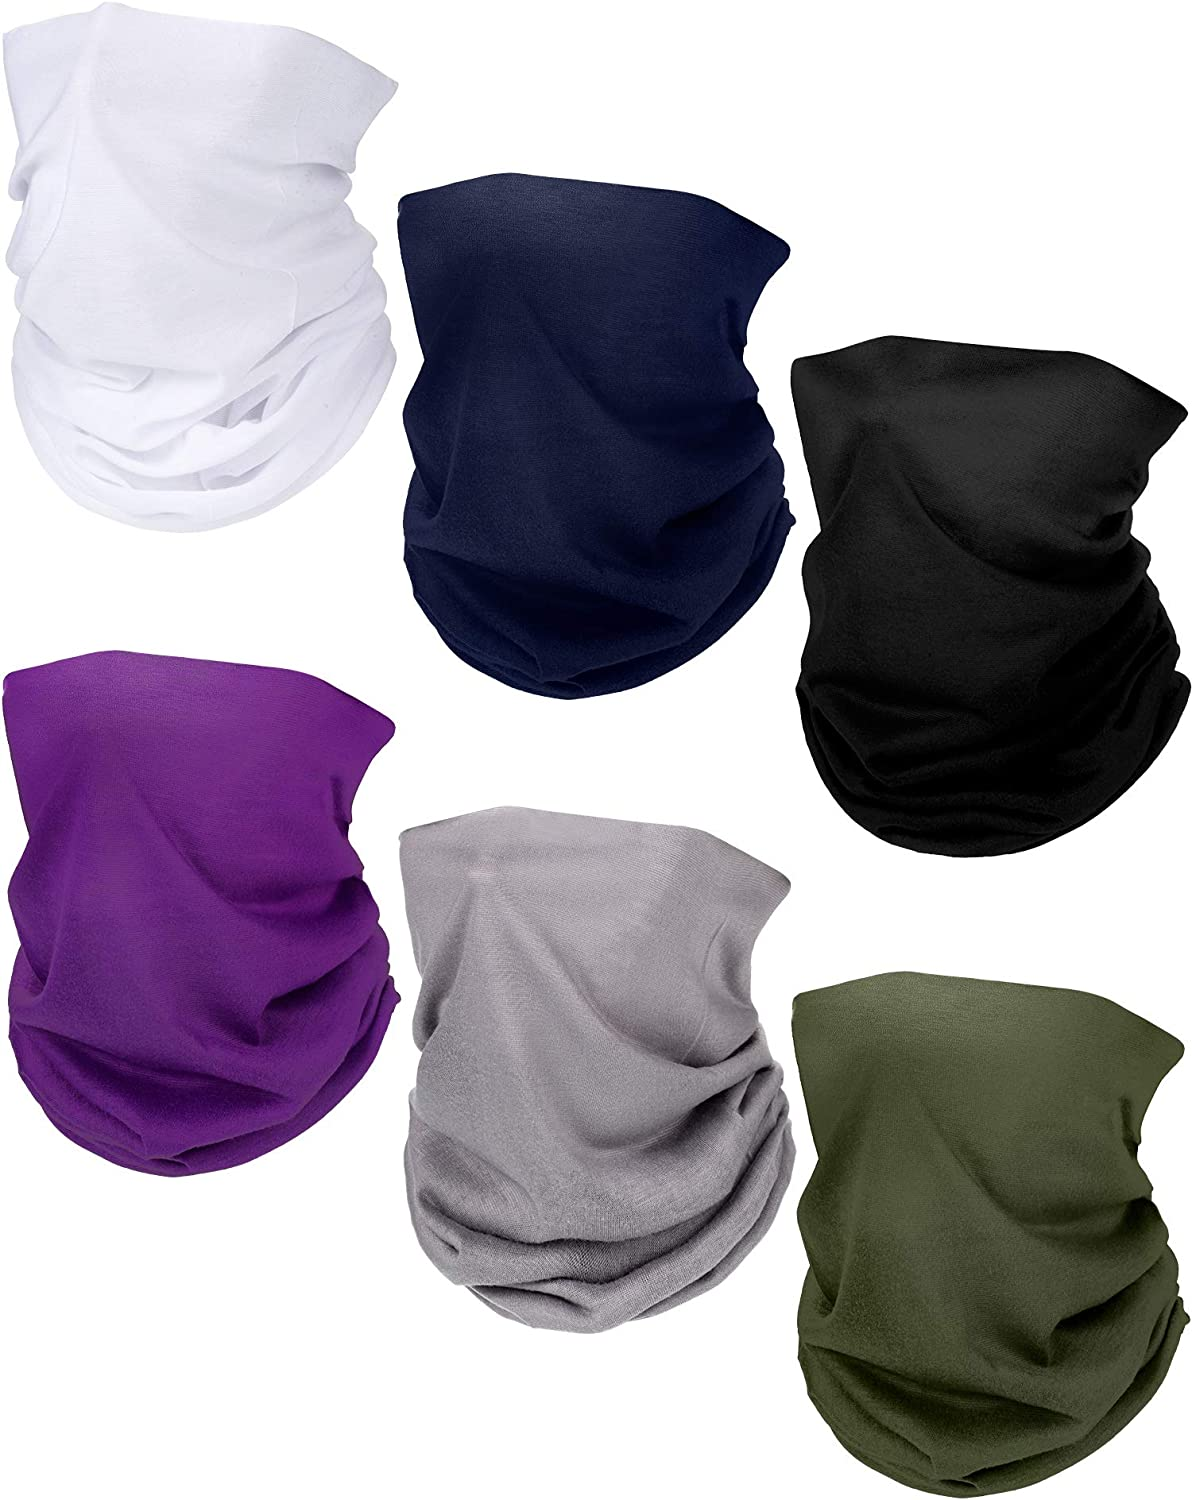 6 Pieces Breathable Lightweight Neck Gaiter Sun Protection Face Mouth Cover for Kids Men Women